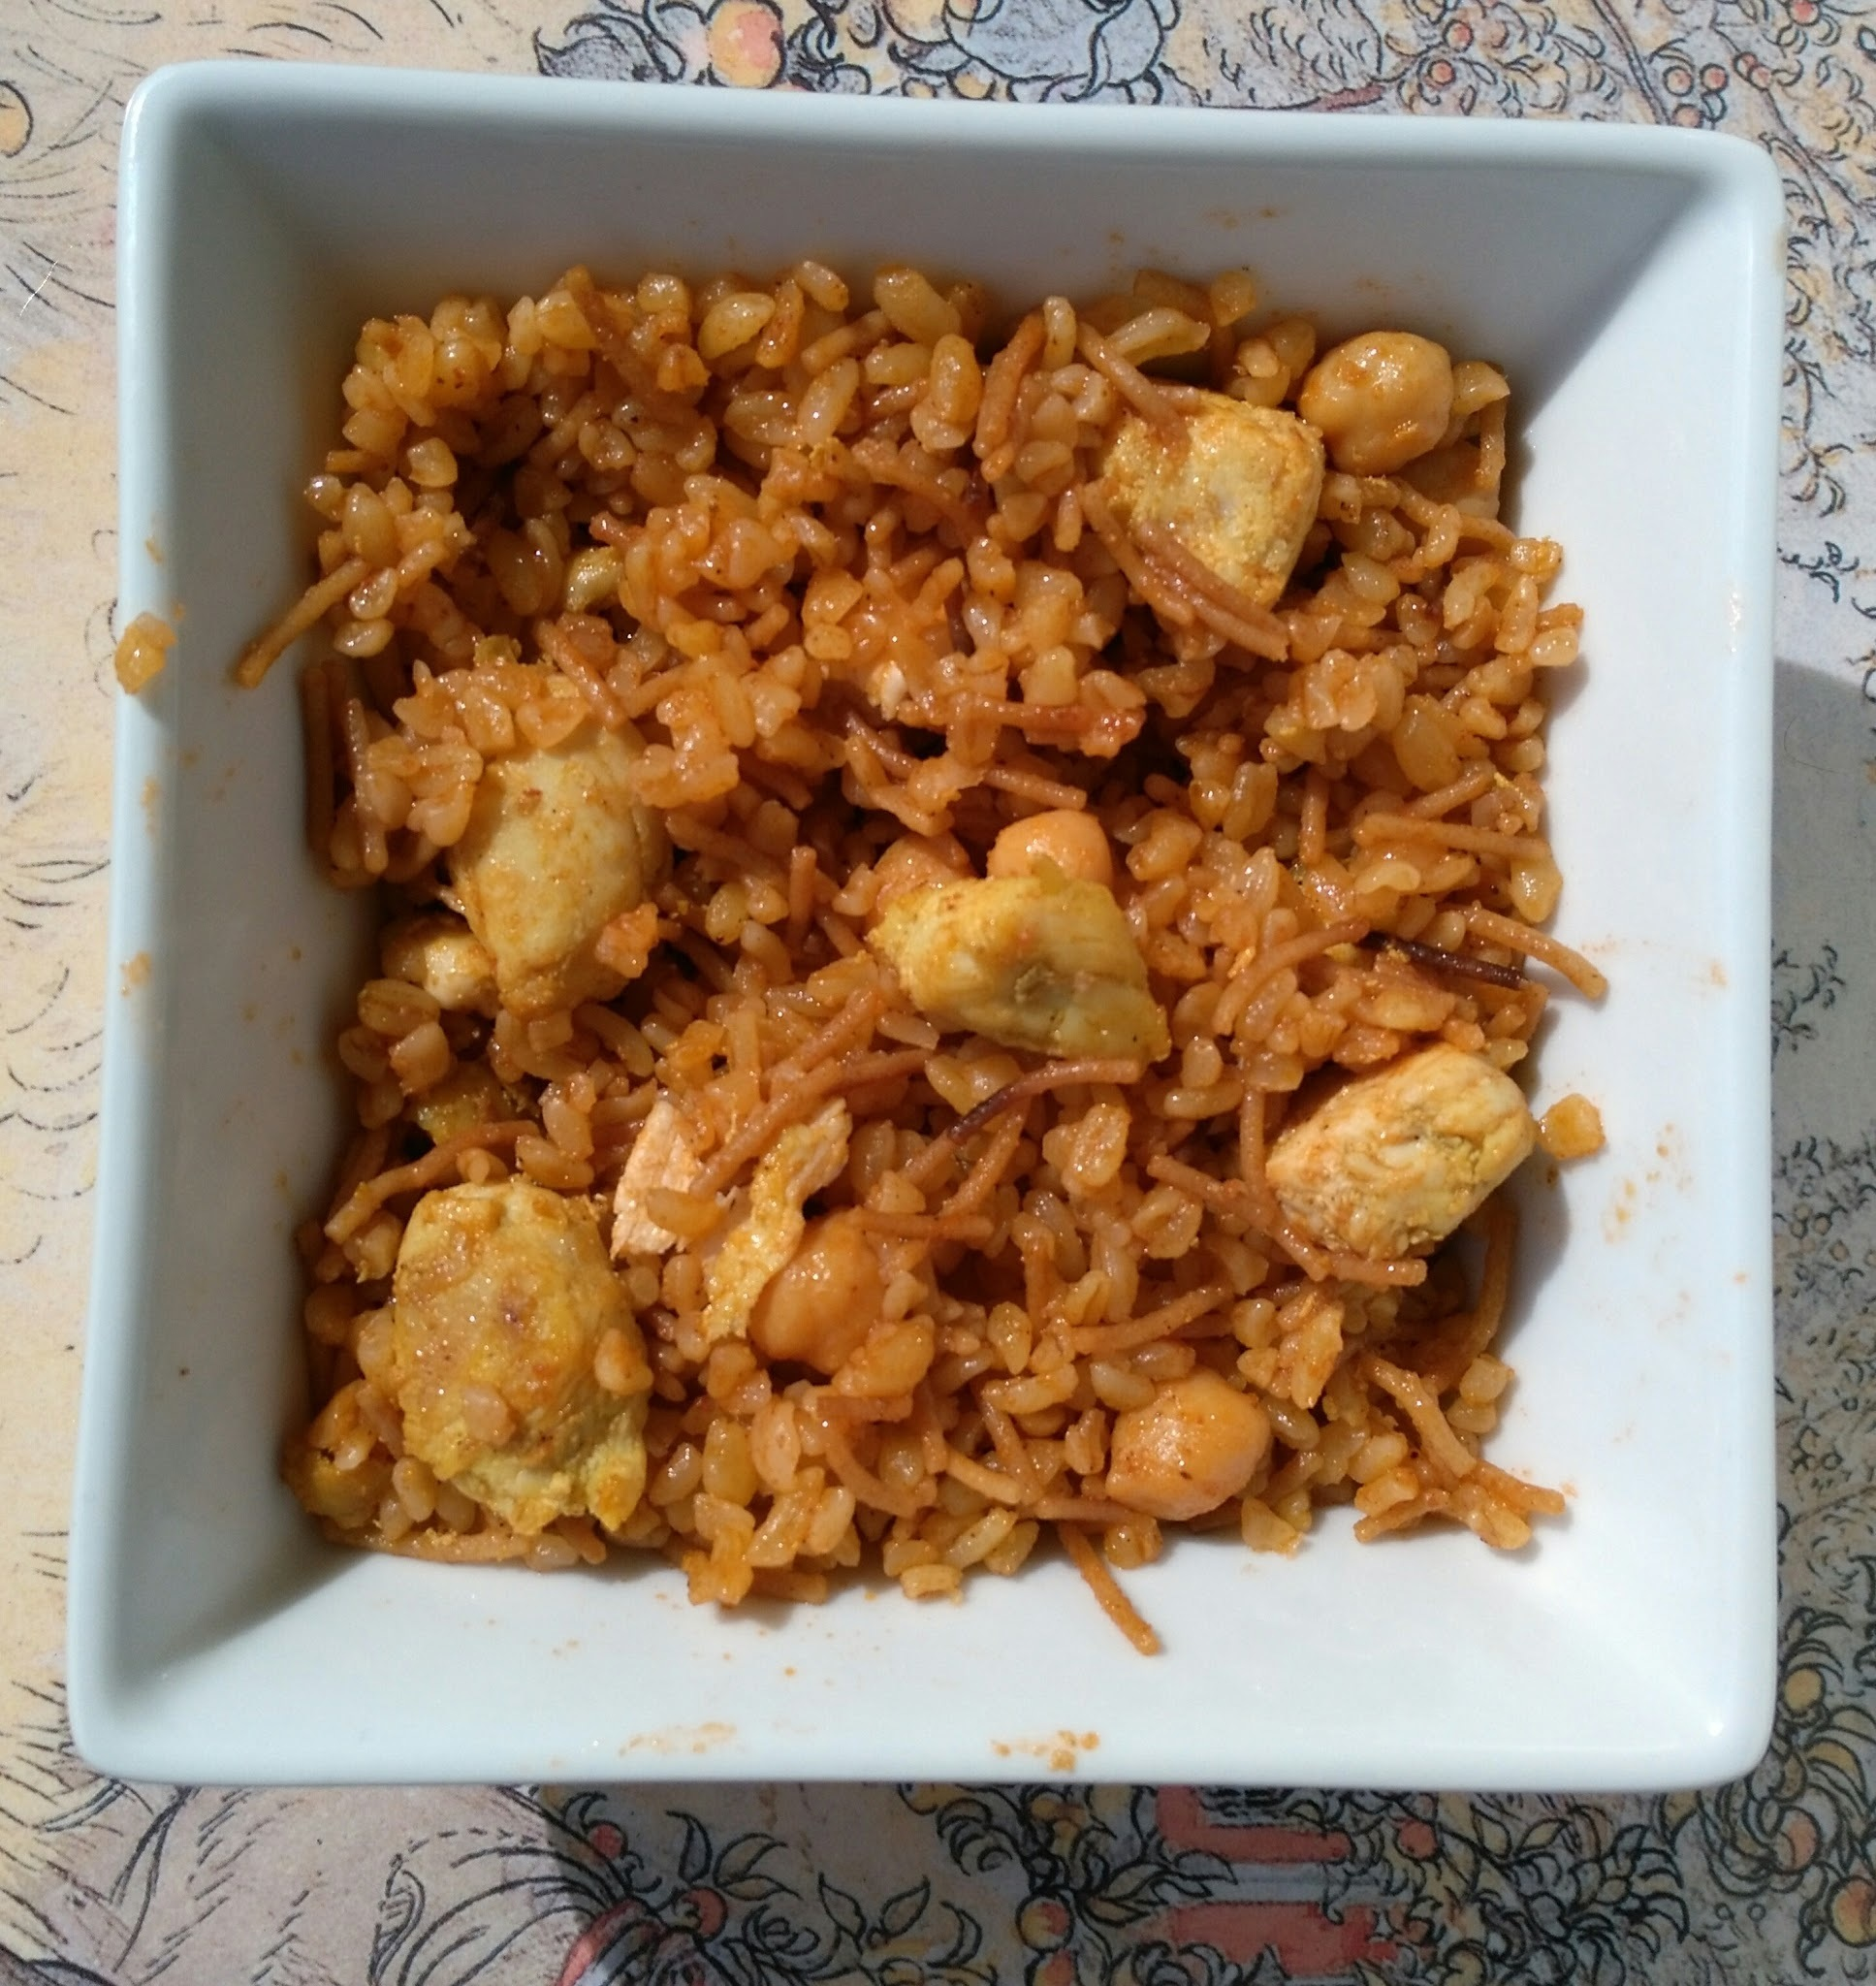 Bulgur pilaf with chickpeas and chicken - recipe